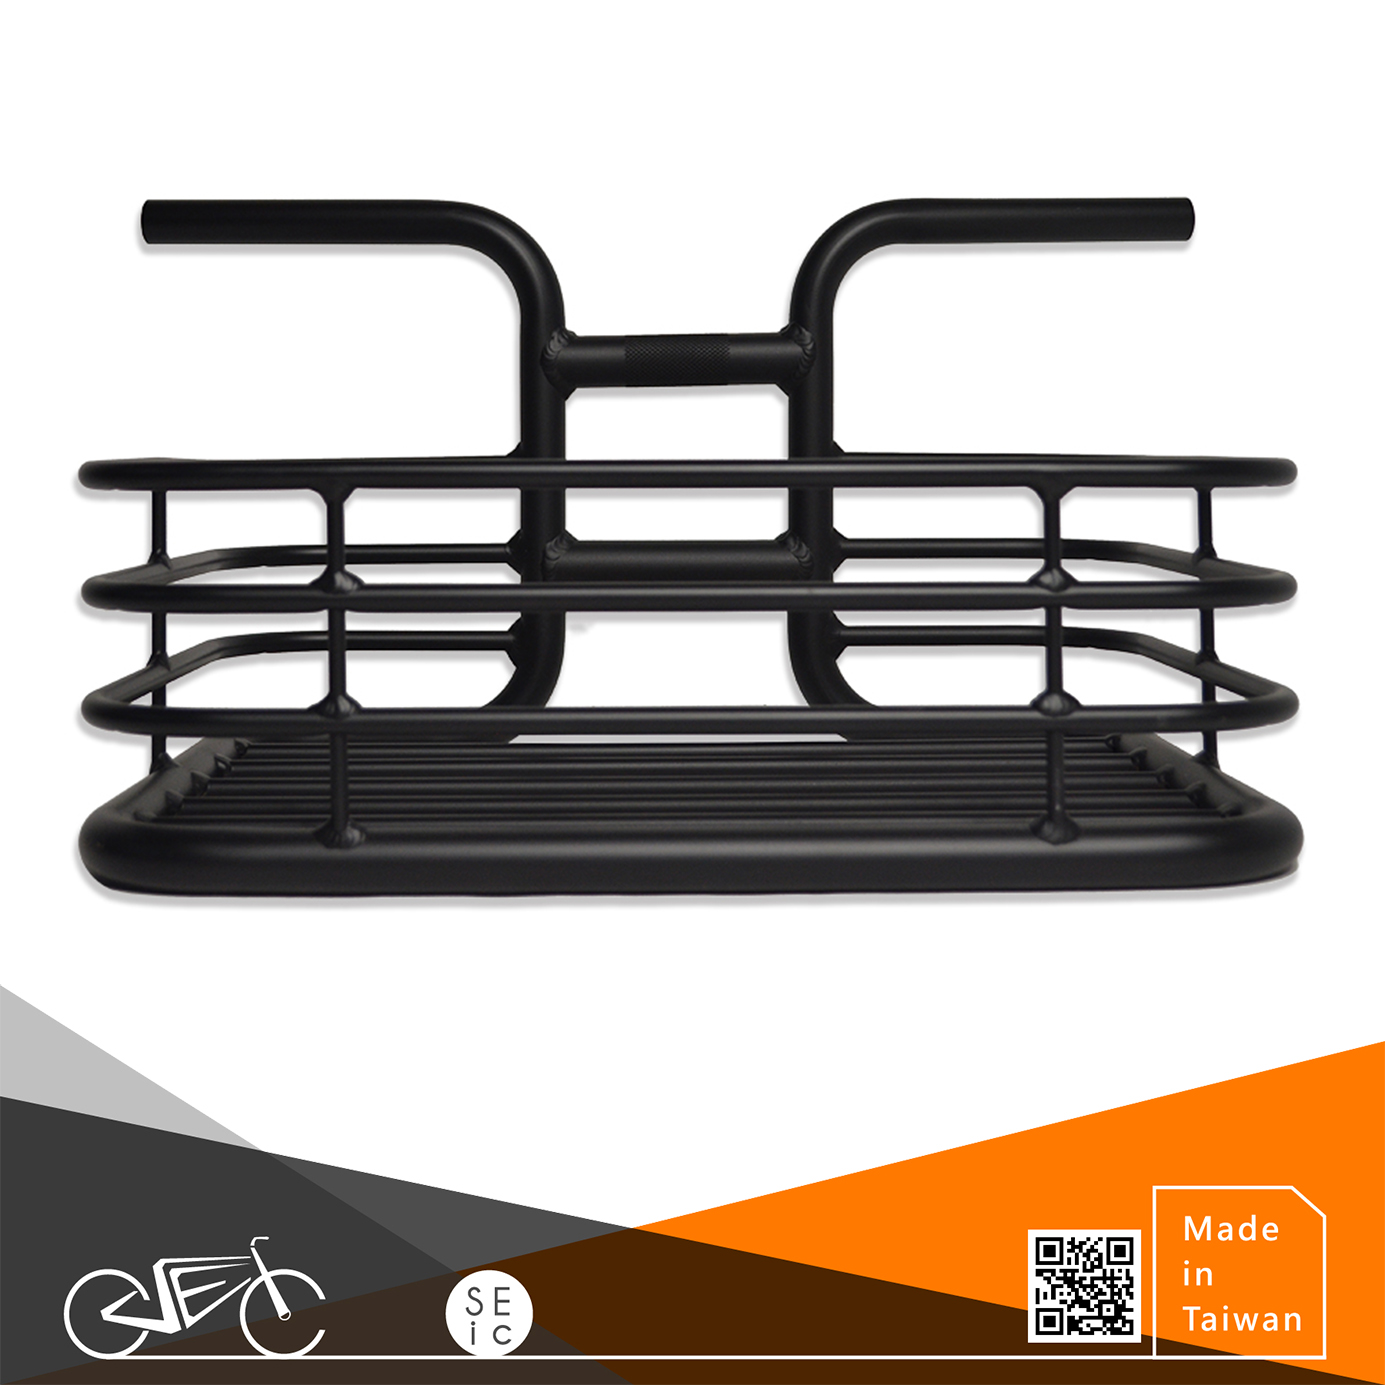 Alloy bicycle handlebar with basket of City bike/Fixed gear/Single speed bike